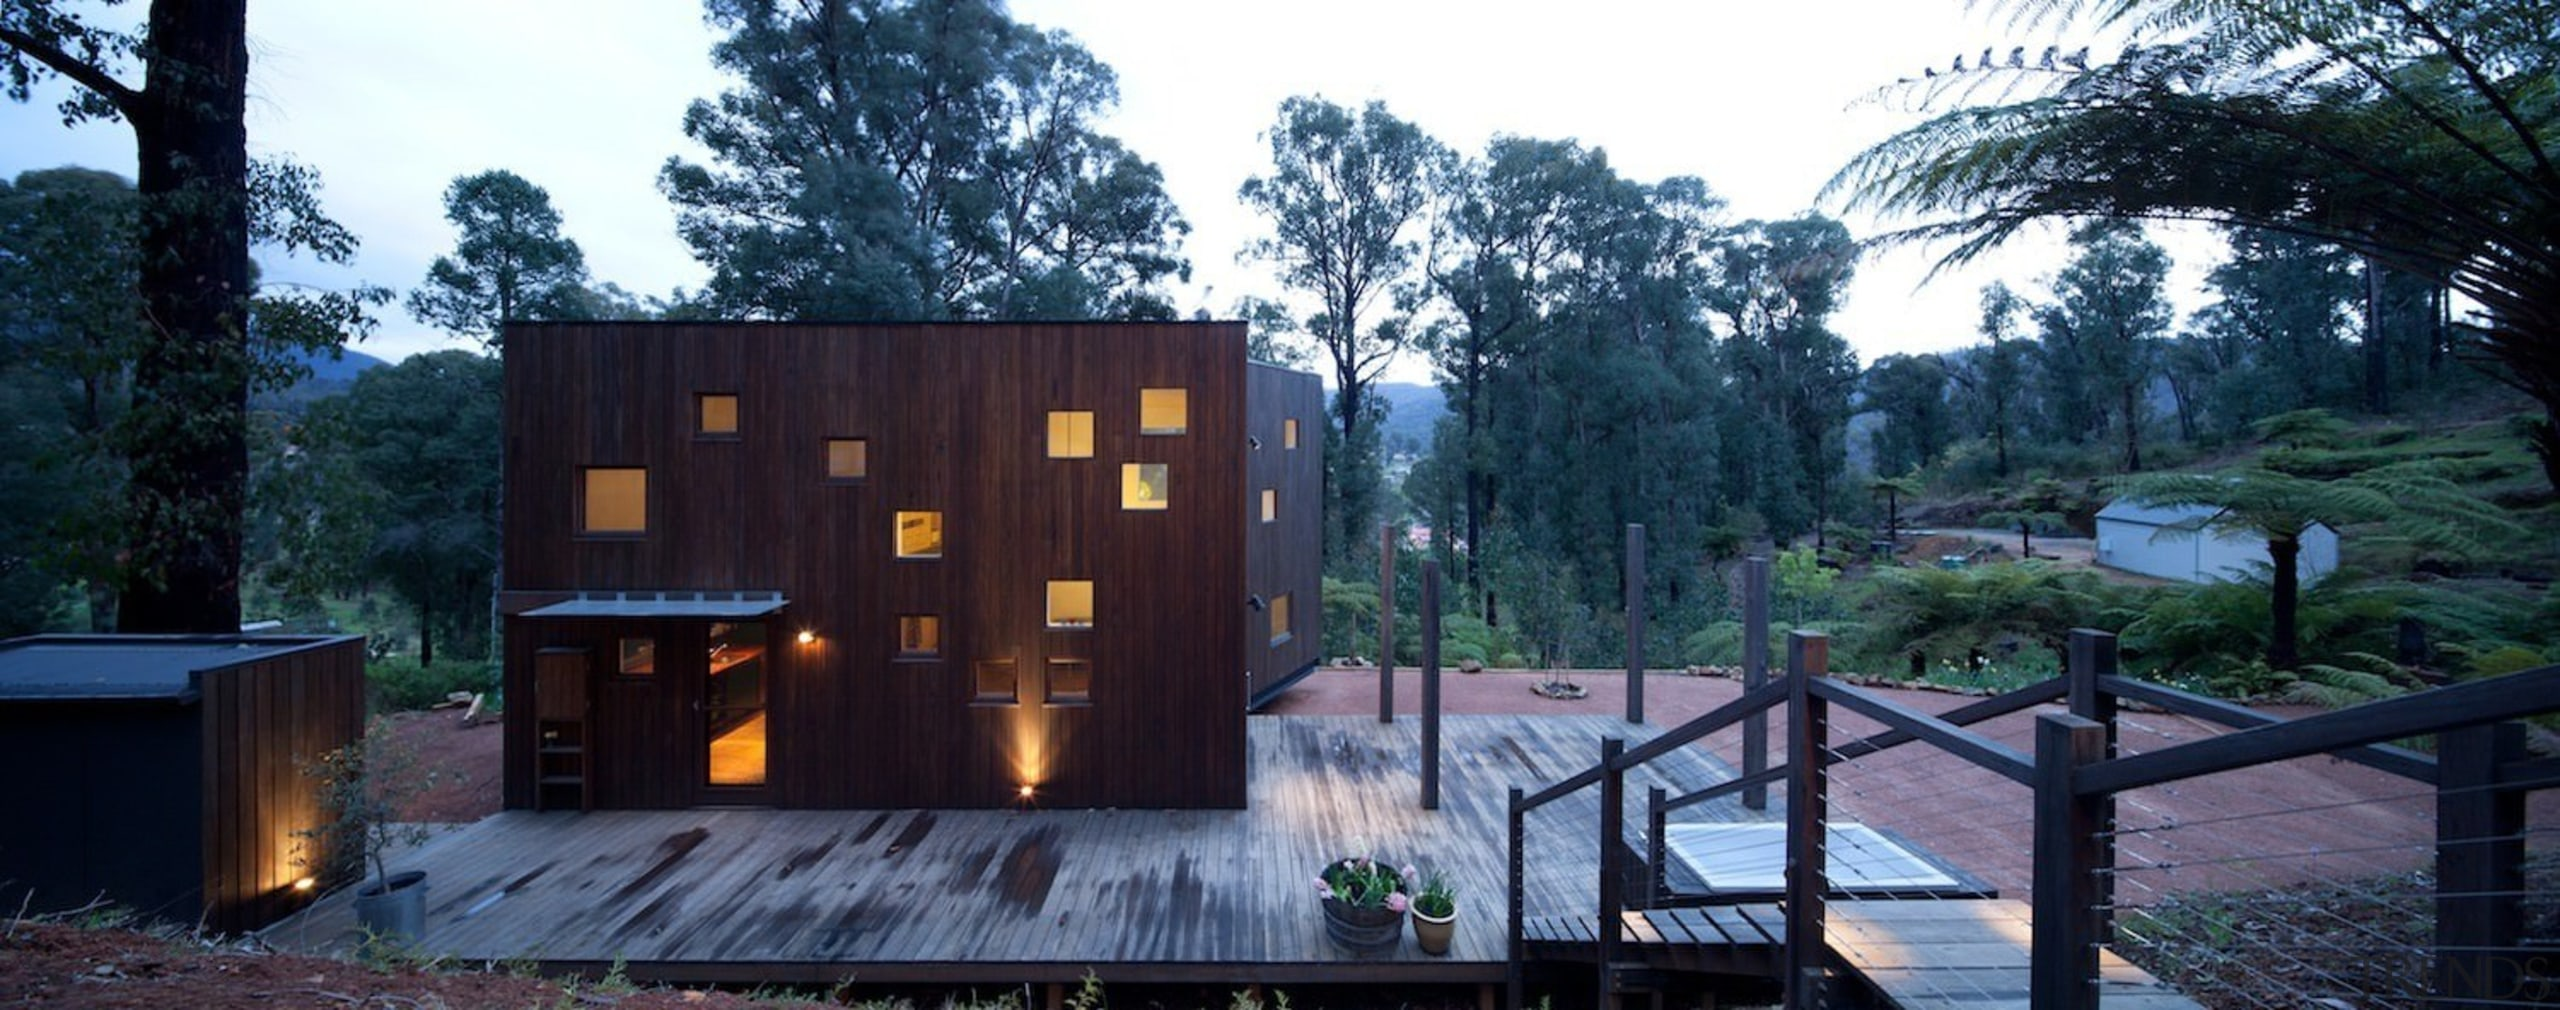 Architect: Steffen Welsch Architects architecture, cottage, home, house, property, tree, black